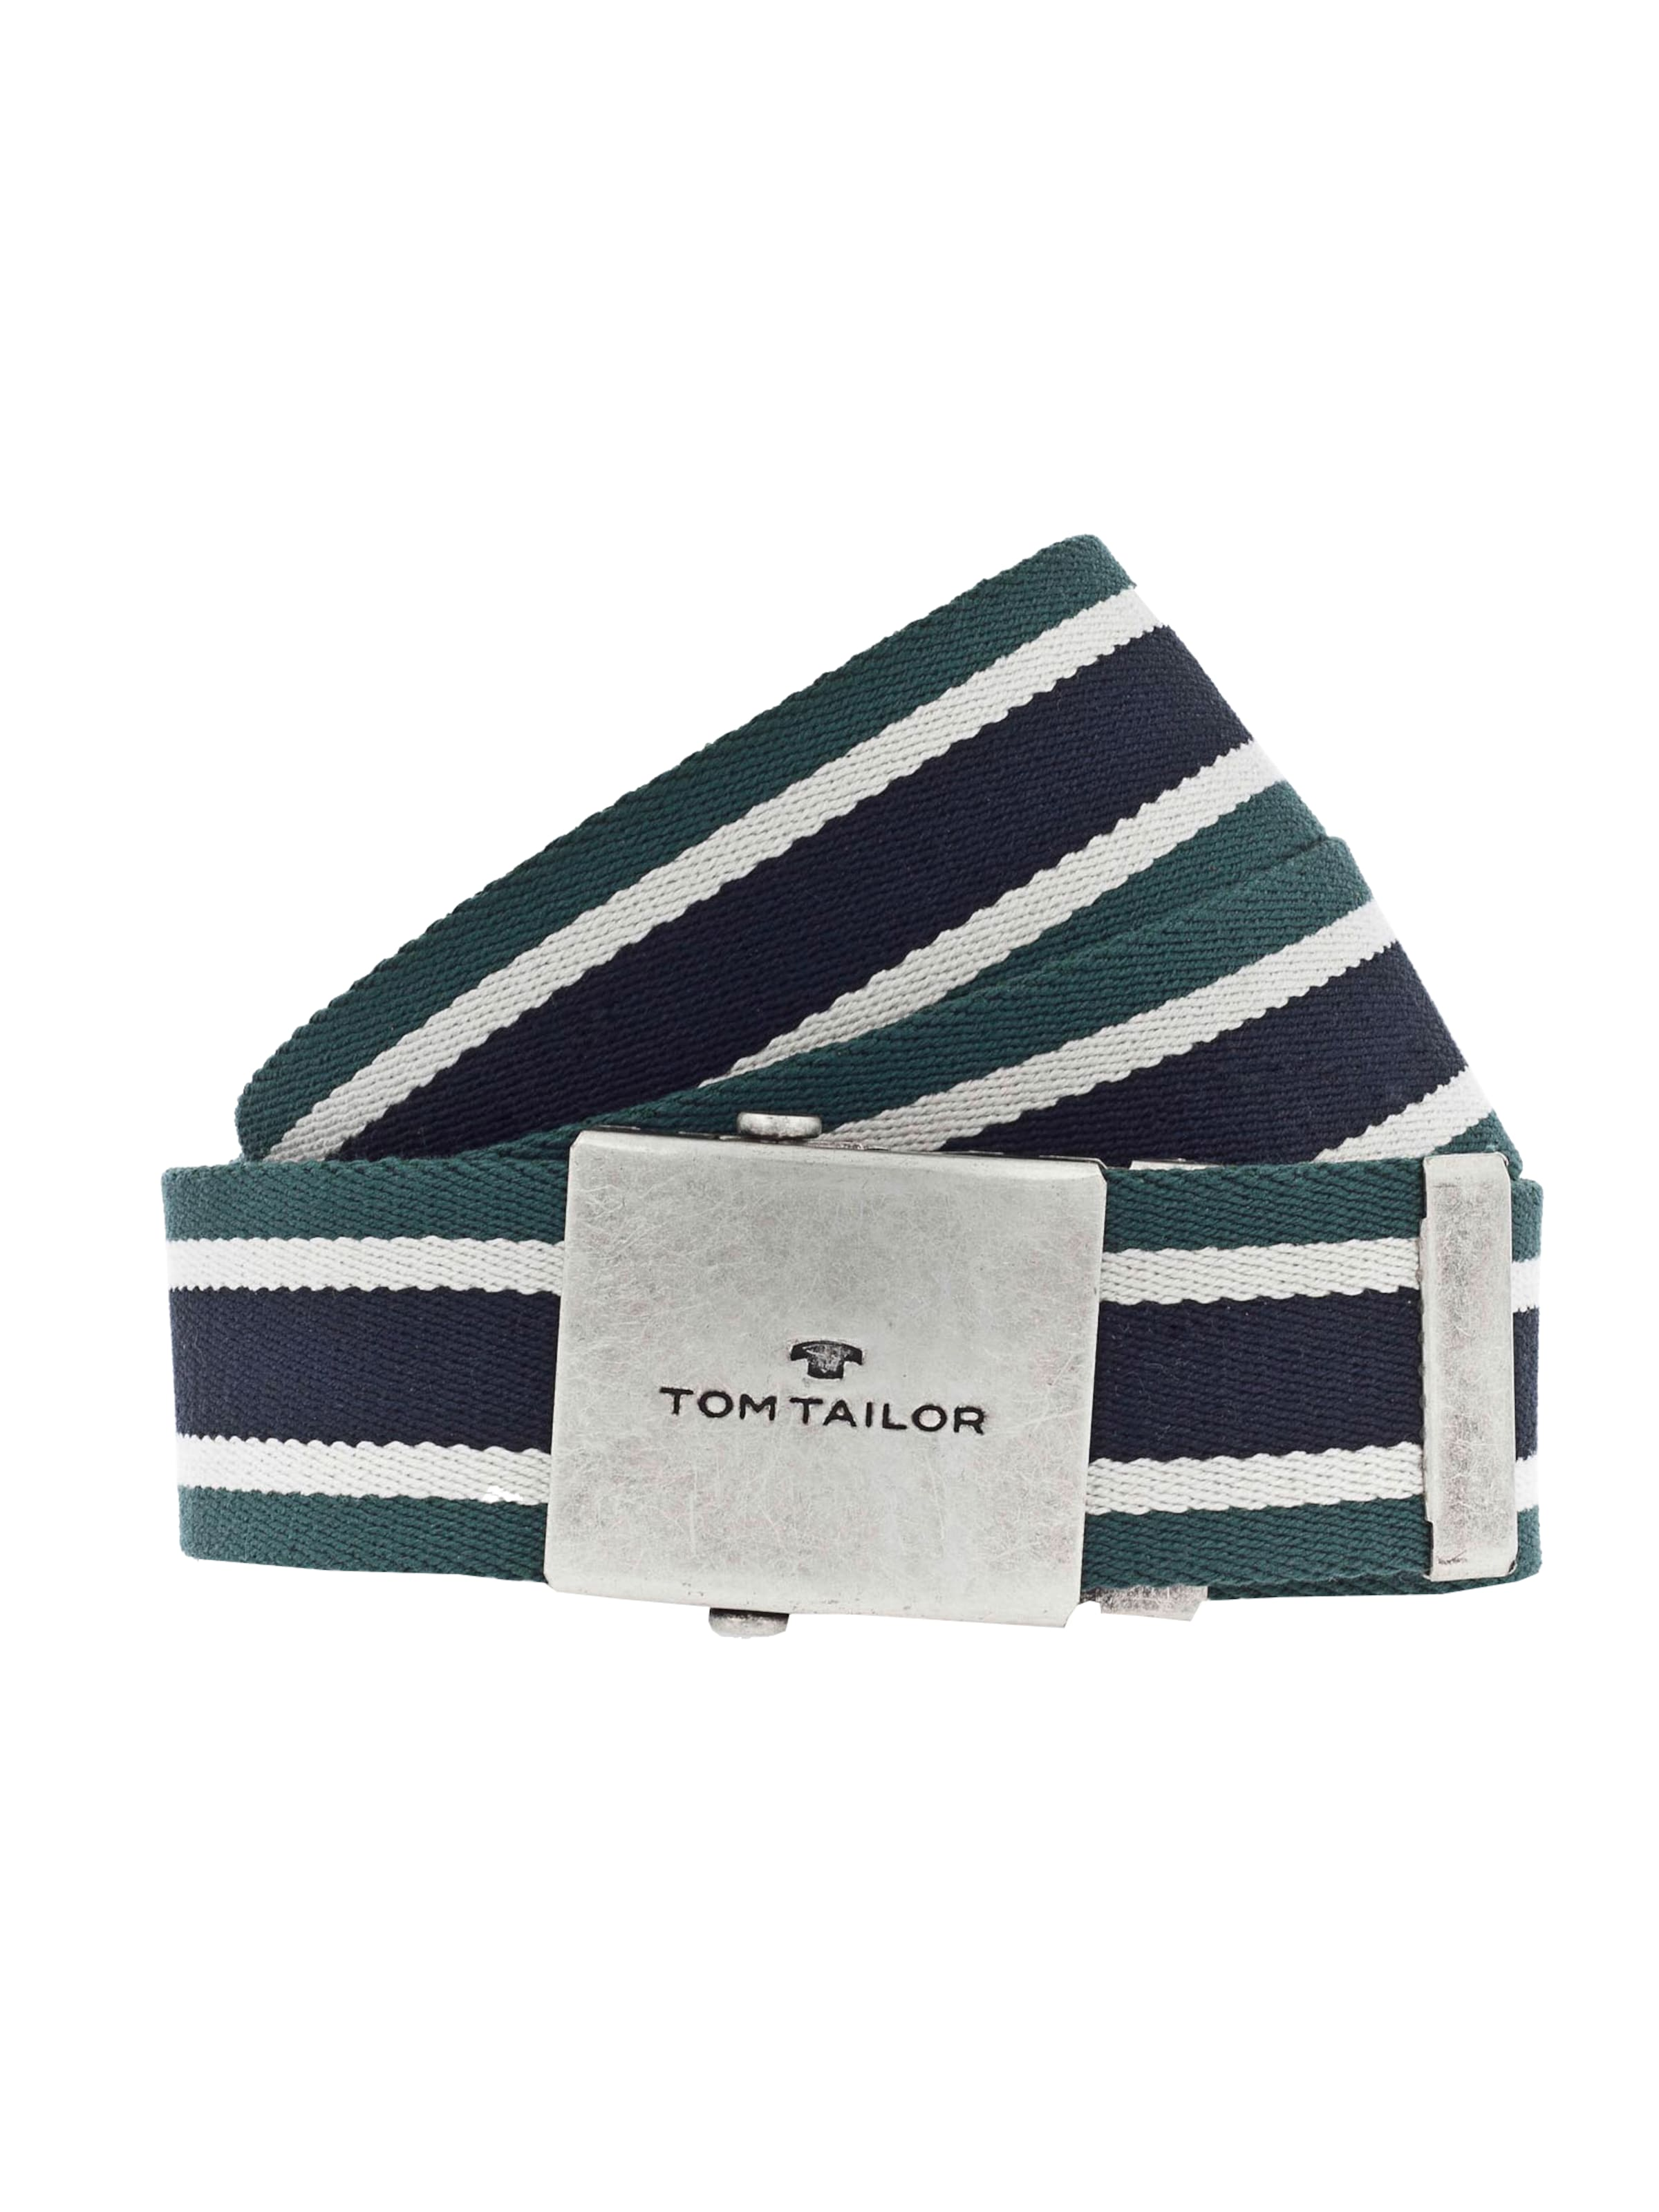 Tom Tailor Gürtel Stripes' NavyDunkelgrün In Webbing With Belt Weiß 'cotton rxodBCe